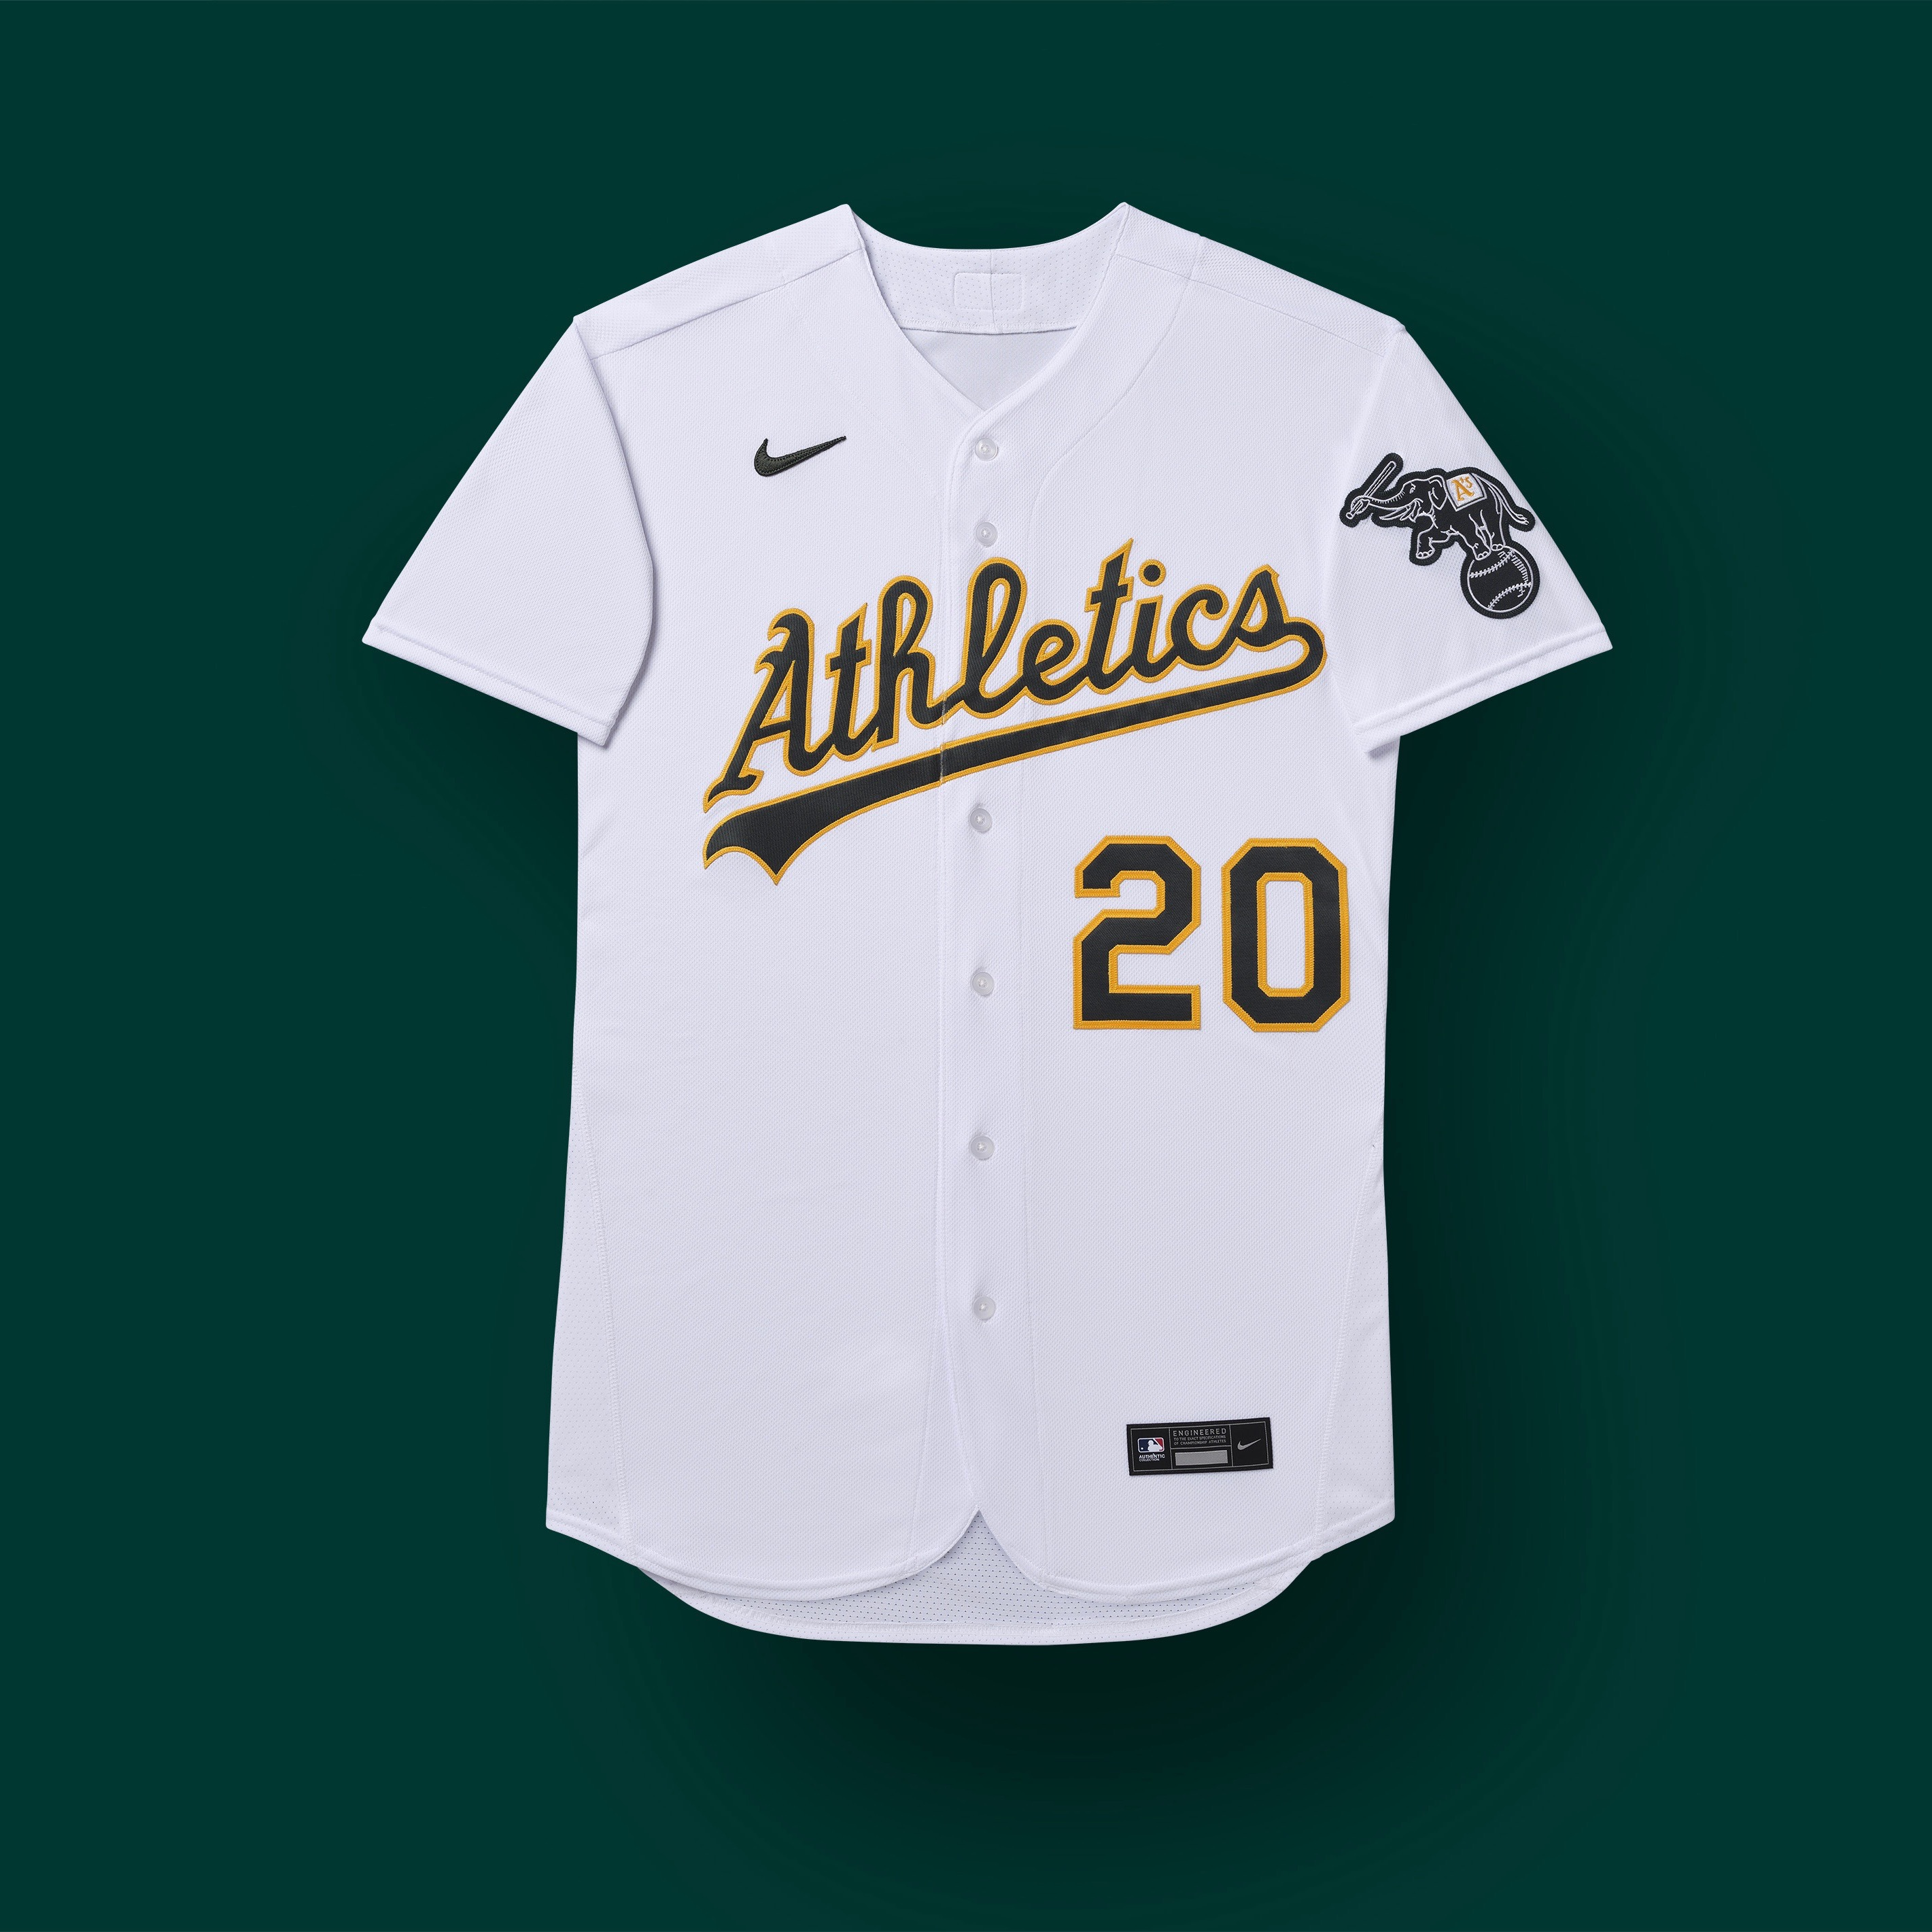 oakland a's 2020 uniforms